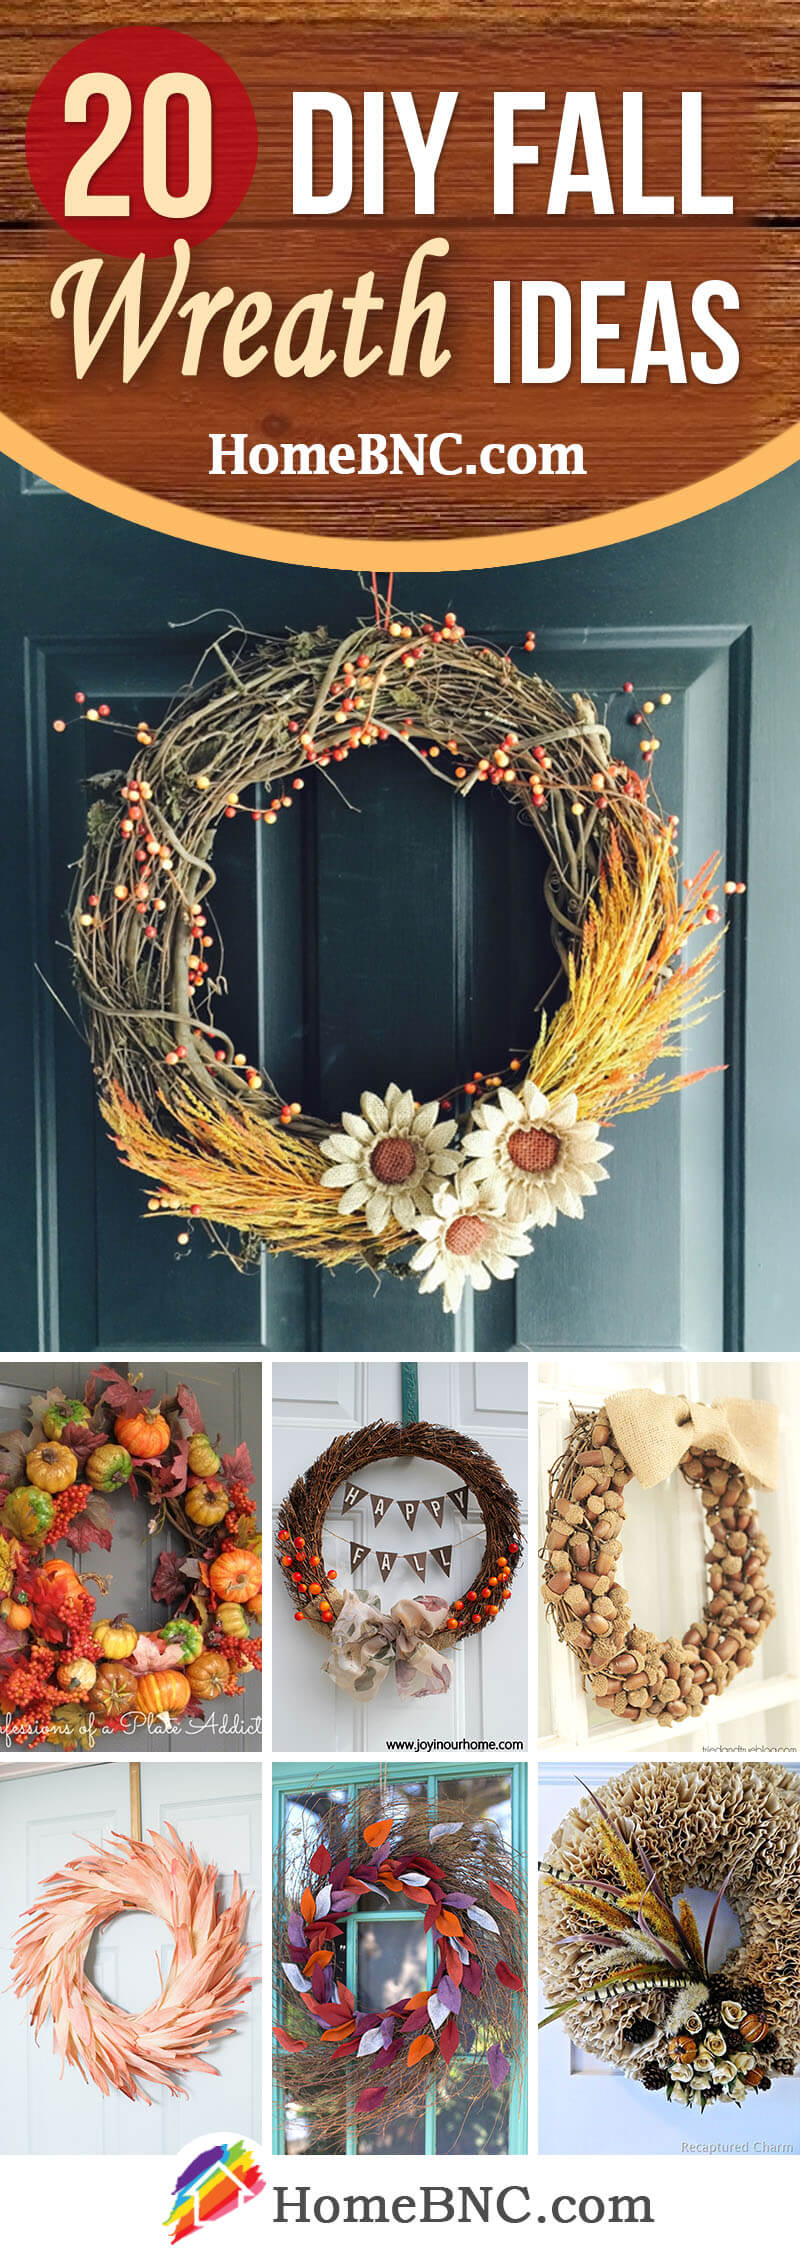 20 Best Diy Fall Wreath Ideas And Designs For 2020